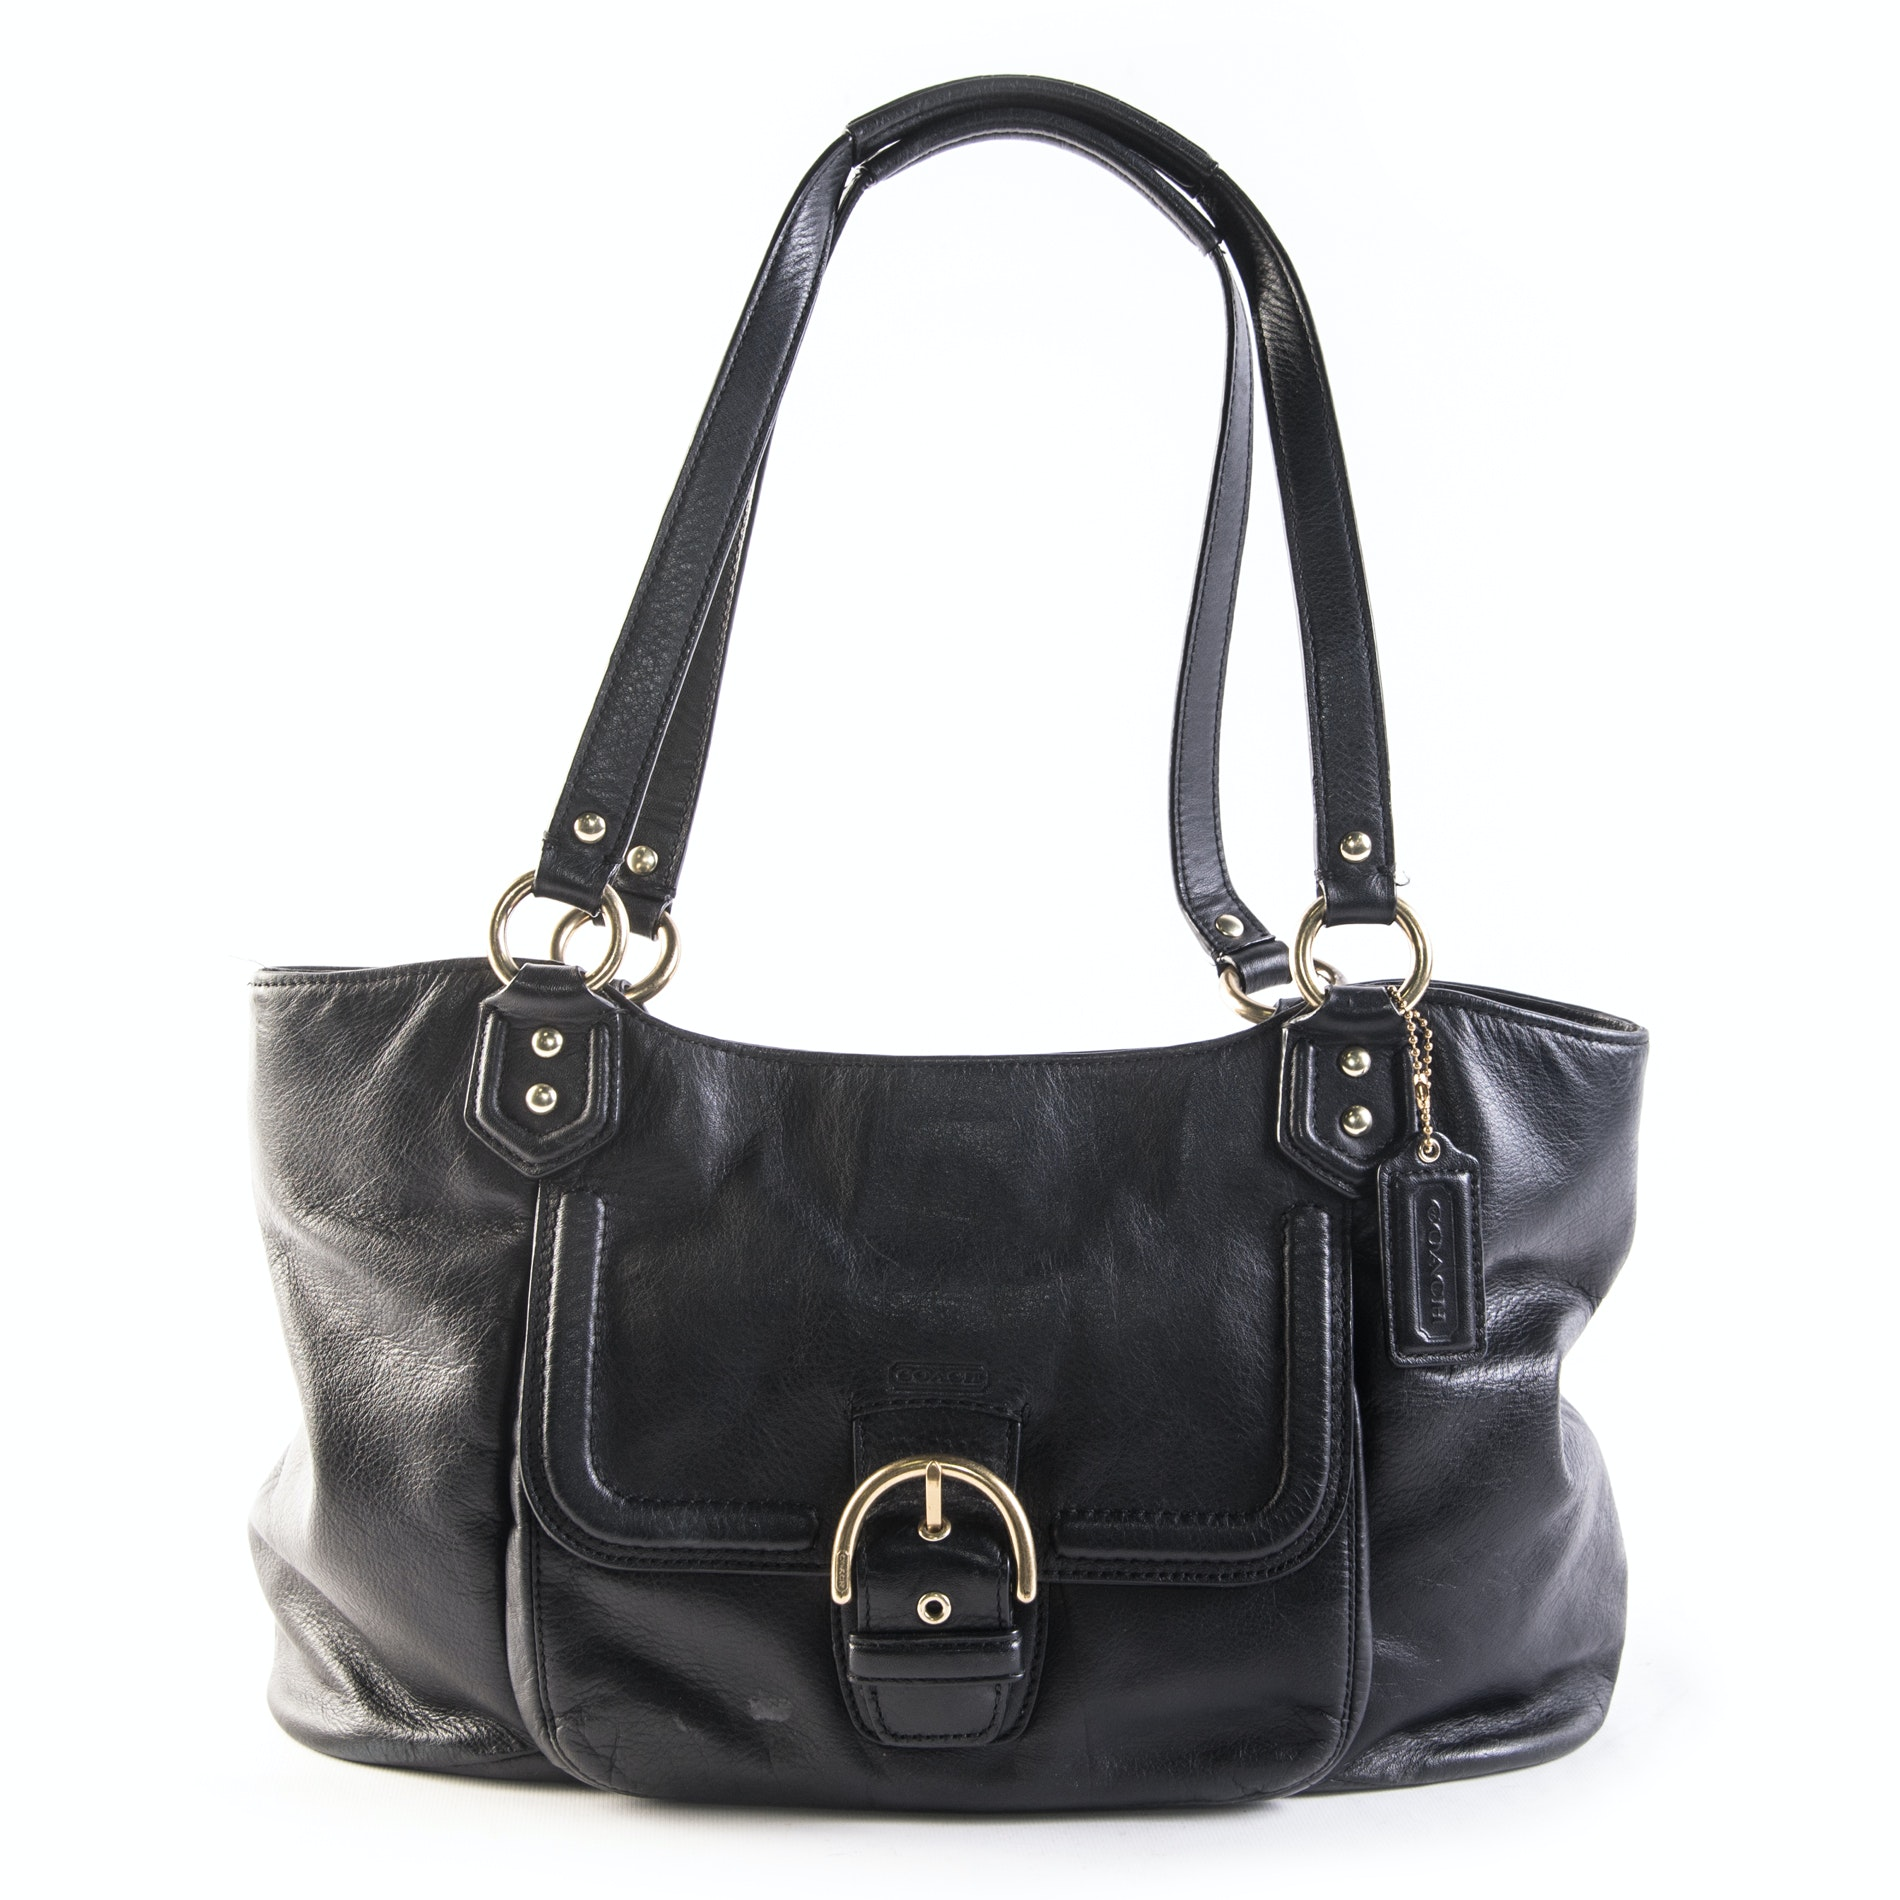 Coach Campbell Black Leather Carryall Handbag